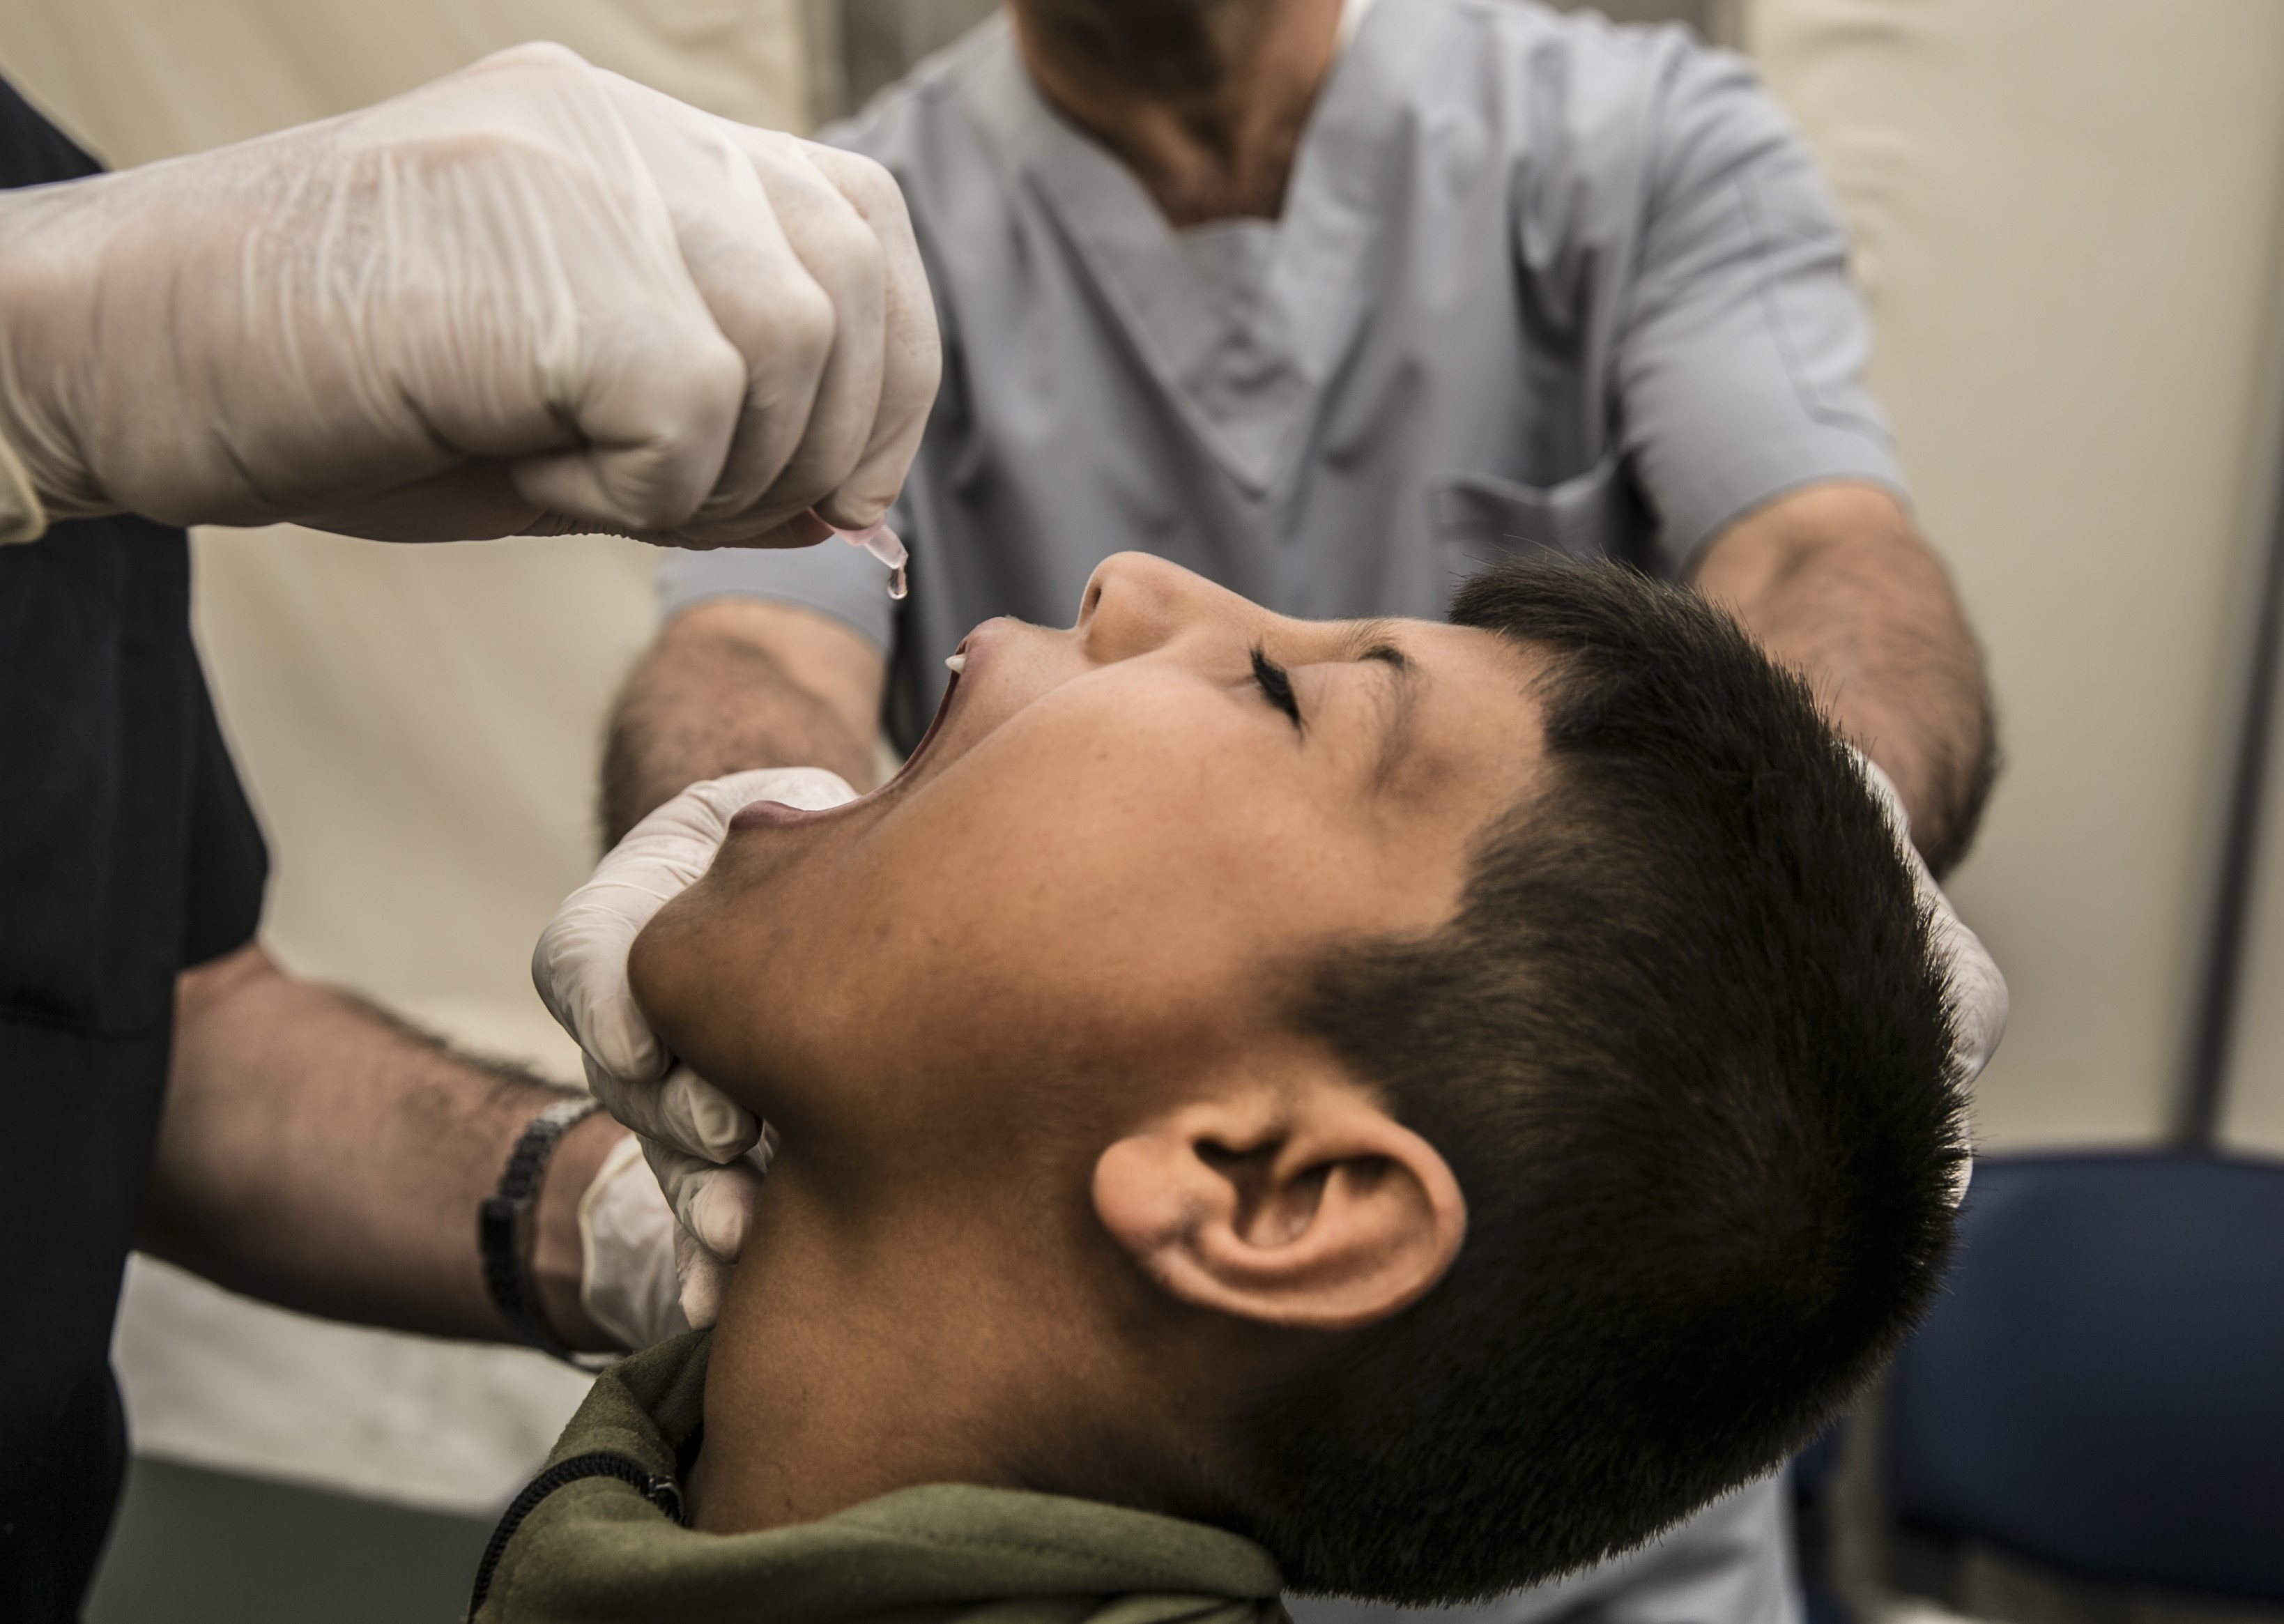 A Syrian child receives vaccination during polio, measles mumps vaccination campaign for Syrian children at Bab al-Hawa Border Crossing and Cilvegozu Border Gate in Reyhanli district of Hatay on October 01, 2018. Syrian children received vaccination before entering Turkey on their return from Syria after leaving for visits during feast of sacrifice.